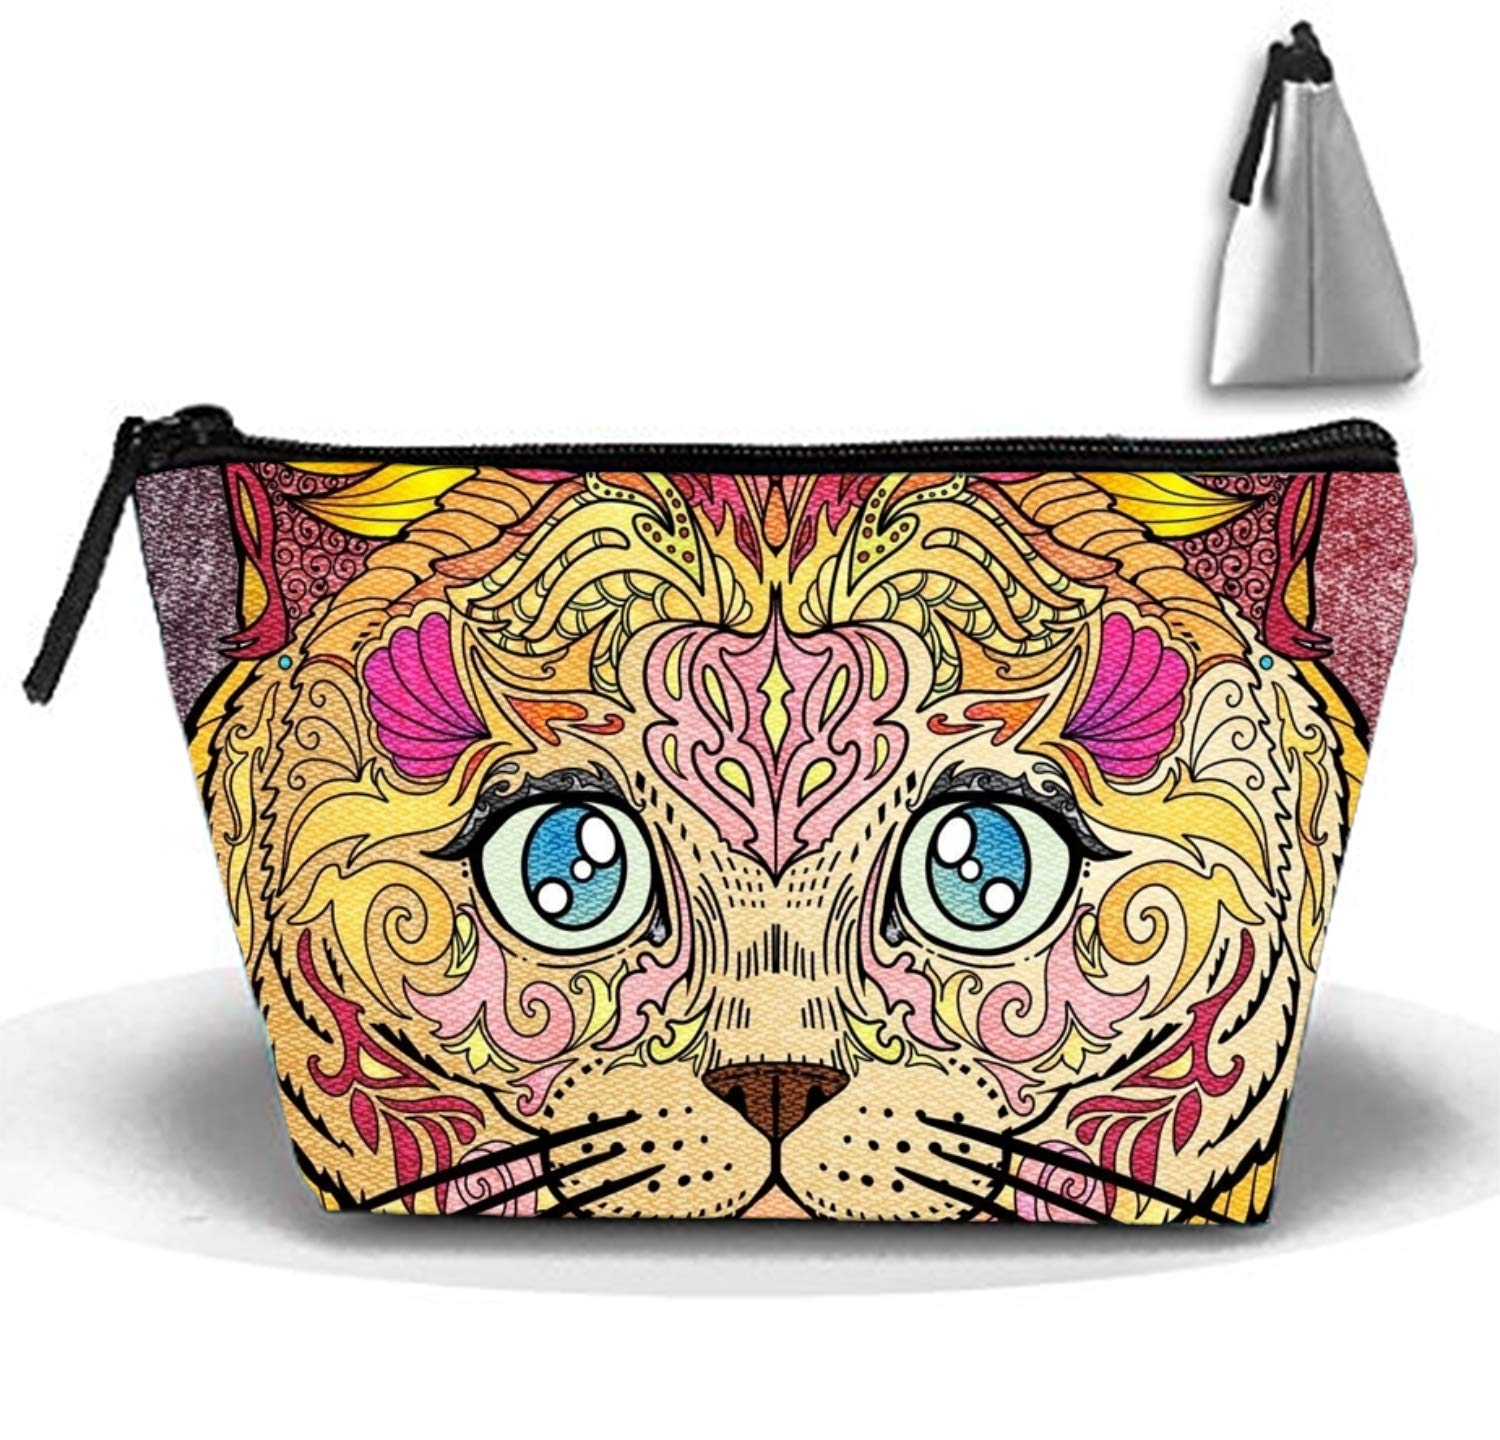 Cute Cat Women's Makeup Organizer Men's Shaving Kit for Travel Accessories, Shampoo, Cosmetic, Personal Items